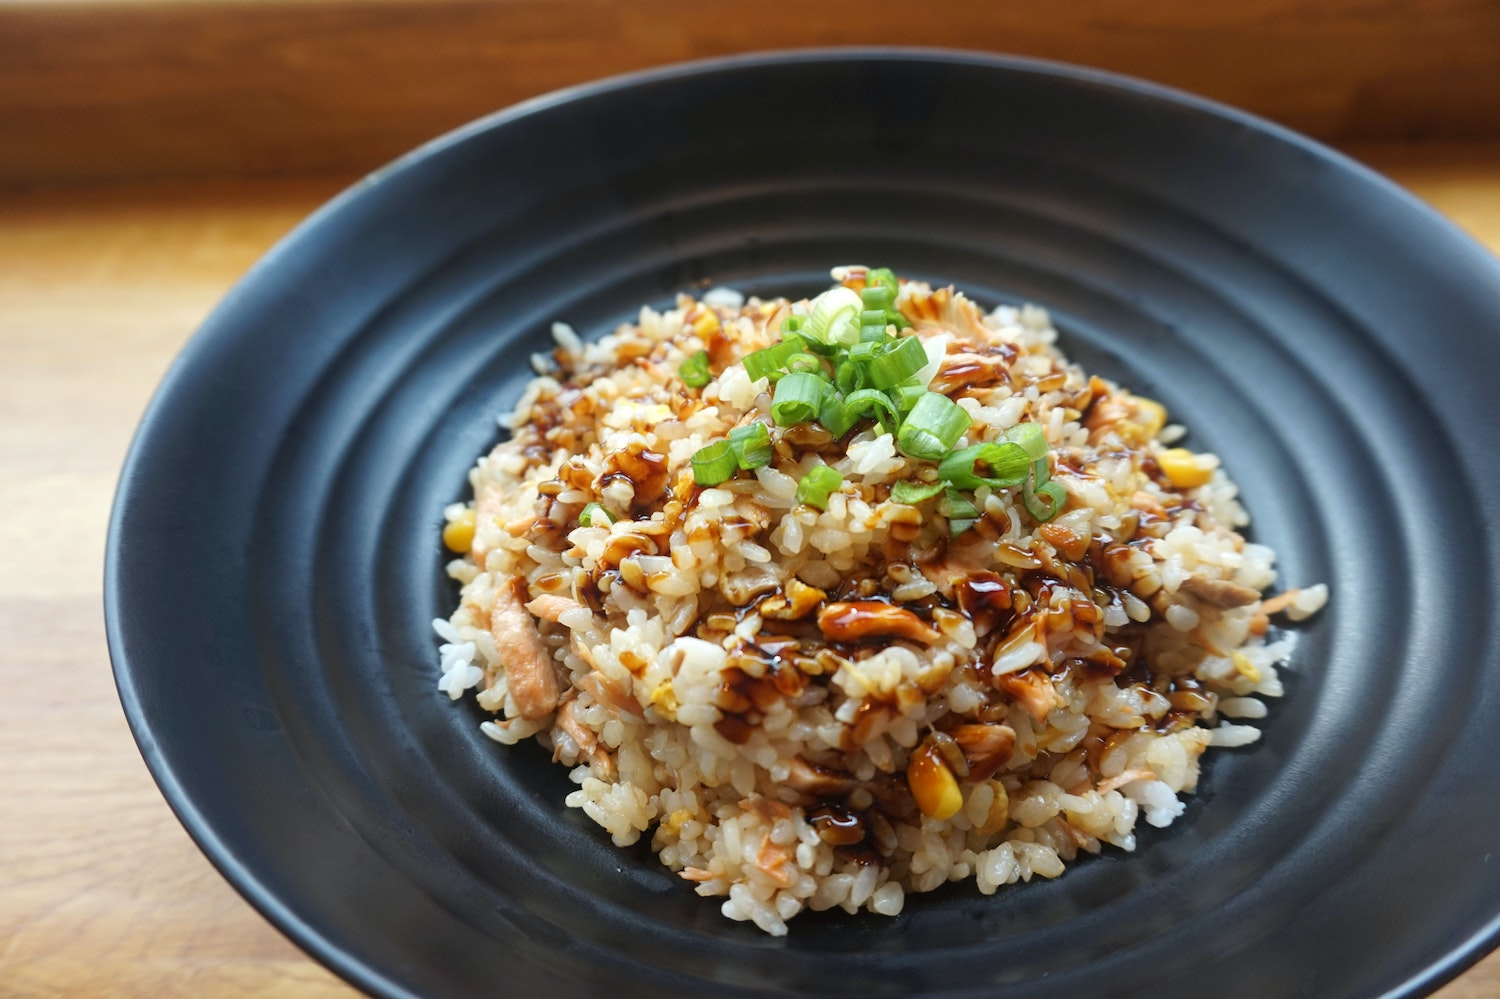 Fried rice in a slow cooker can be surprisingly delicious